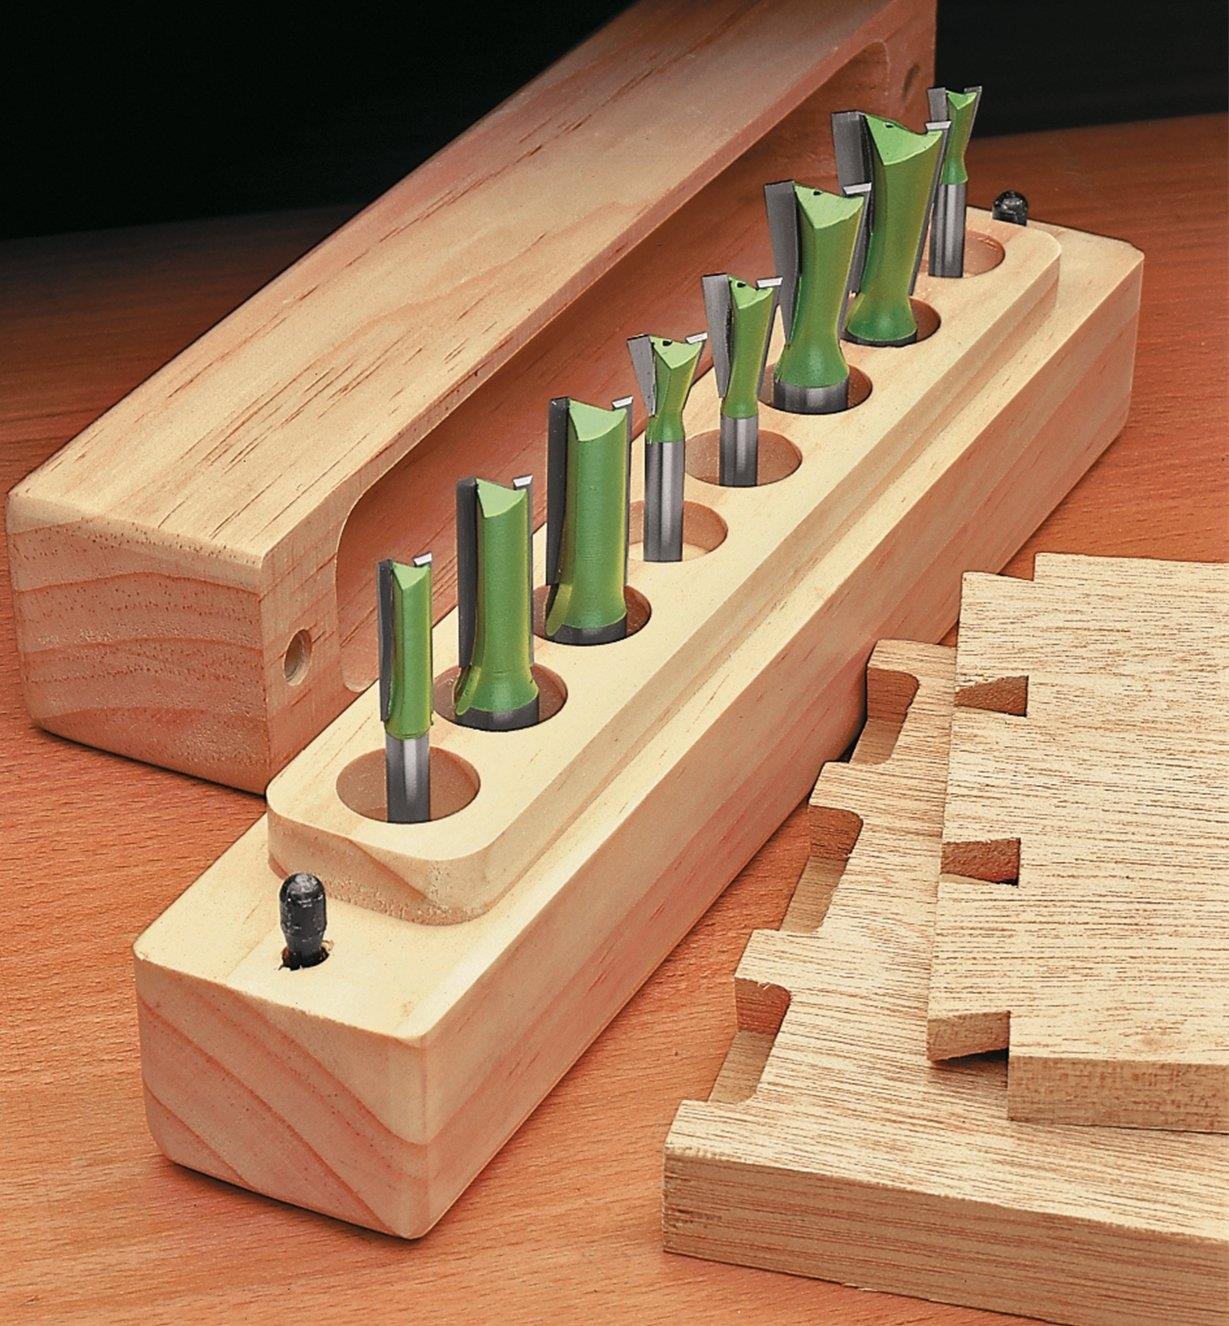 16J0320 - Dovetail Set of 8 for Leigh Jig